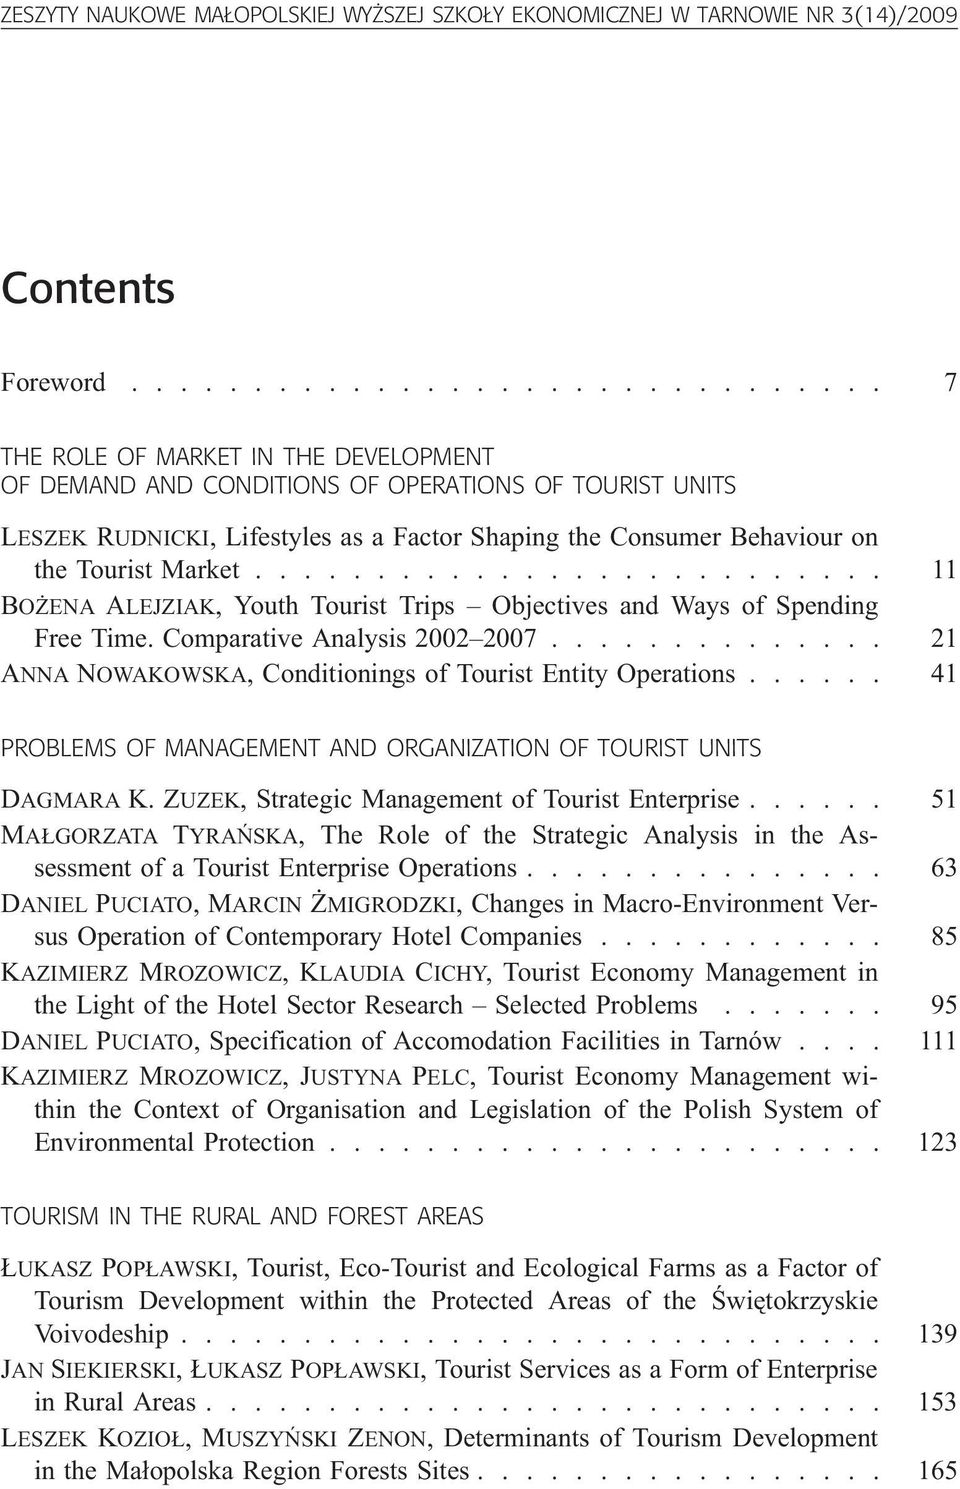 ......................... 11 BO ENA ALEJZIAK, Youth Tourist Trips Objectives and Ways of Spending Free Time. Comparative Analysis 2002 2007.